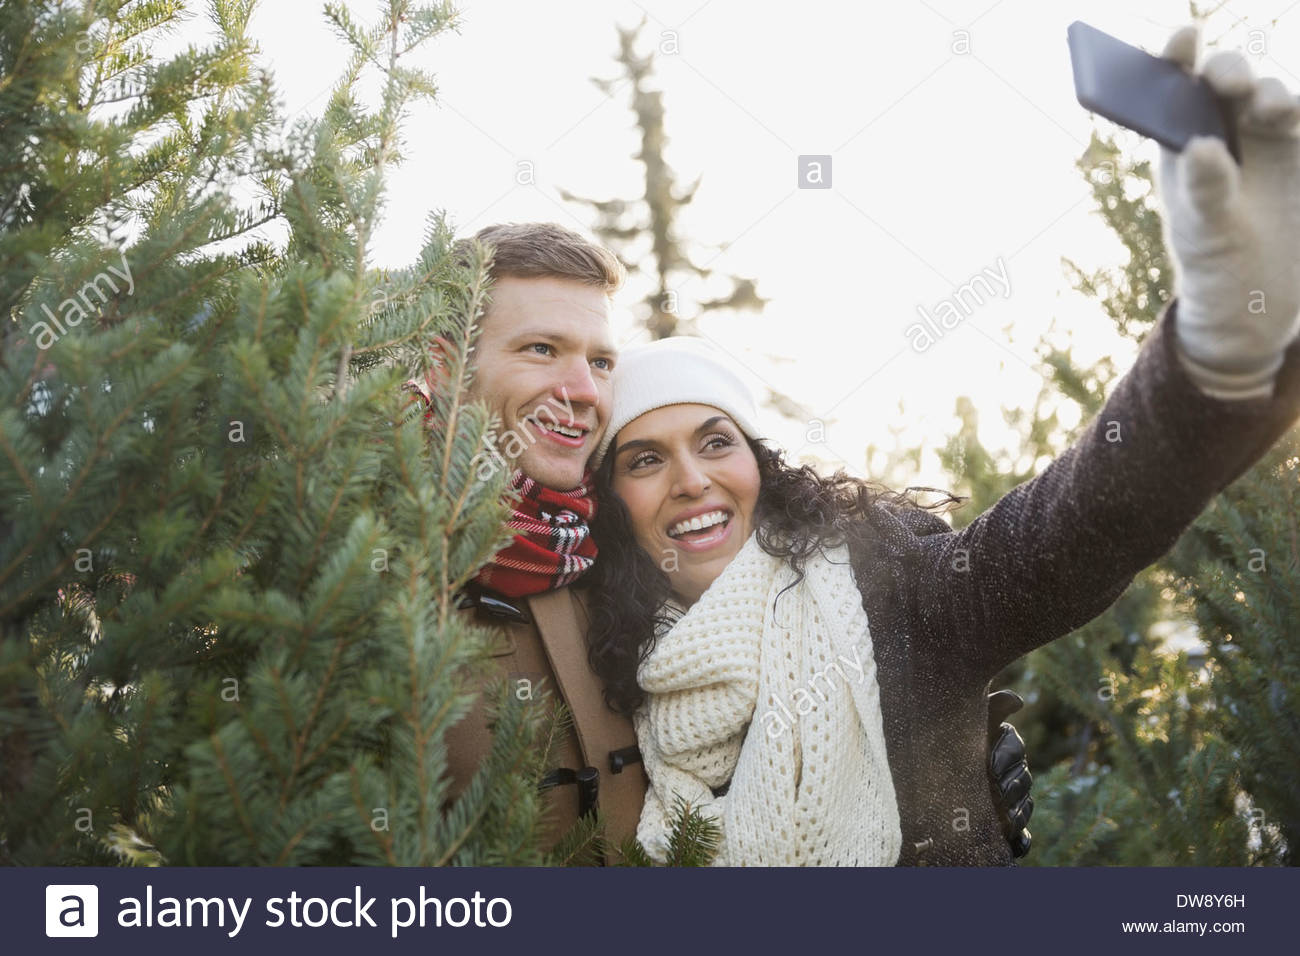 Couple taking self portrait while shopping for Christmas tree - Stock Image